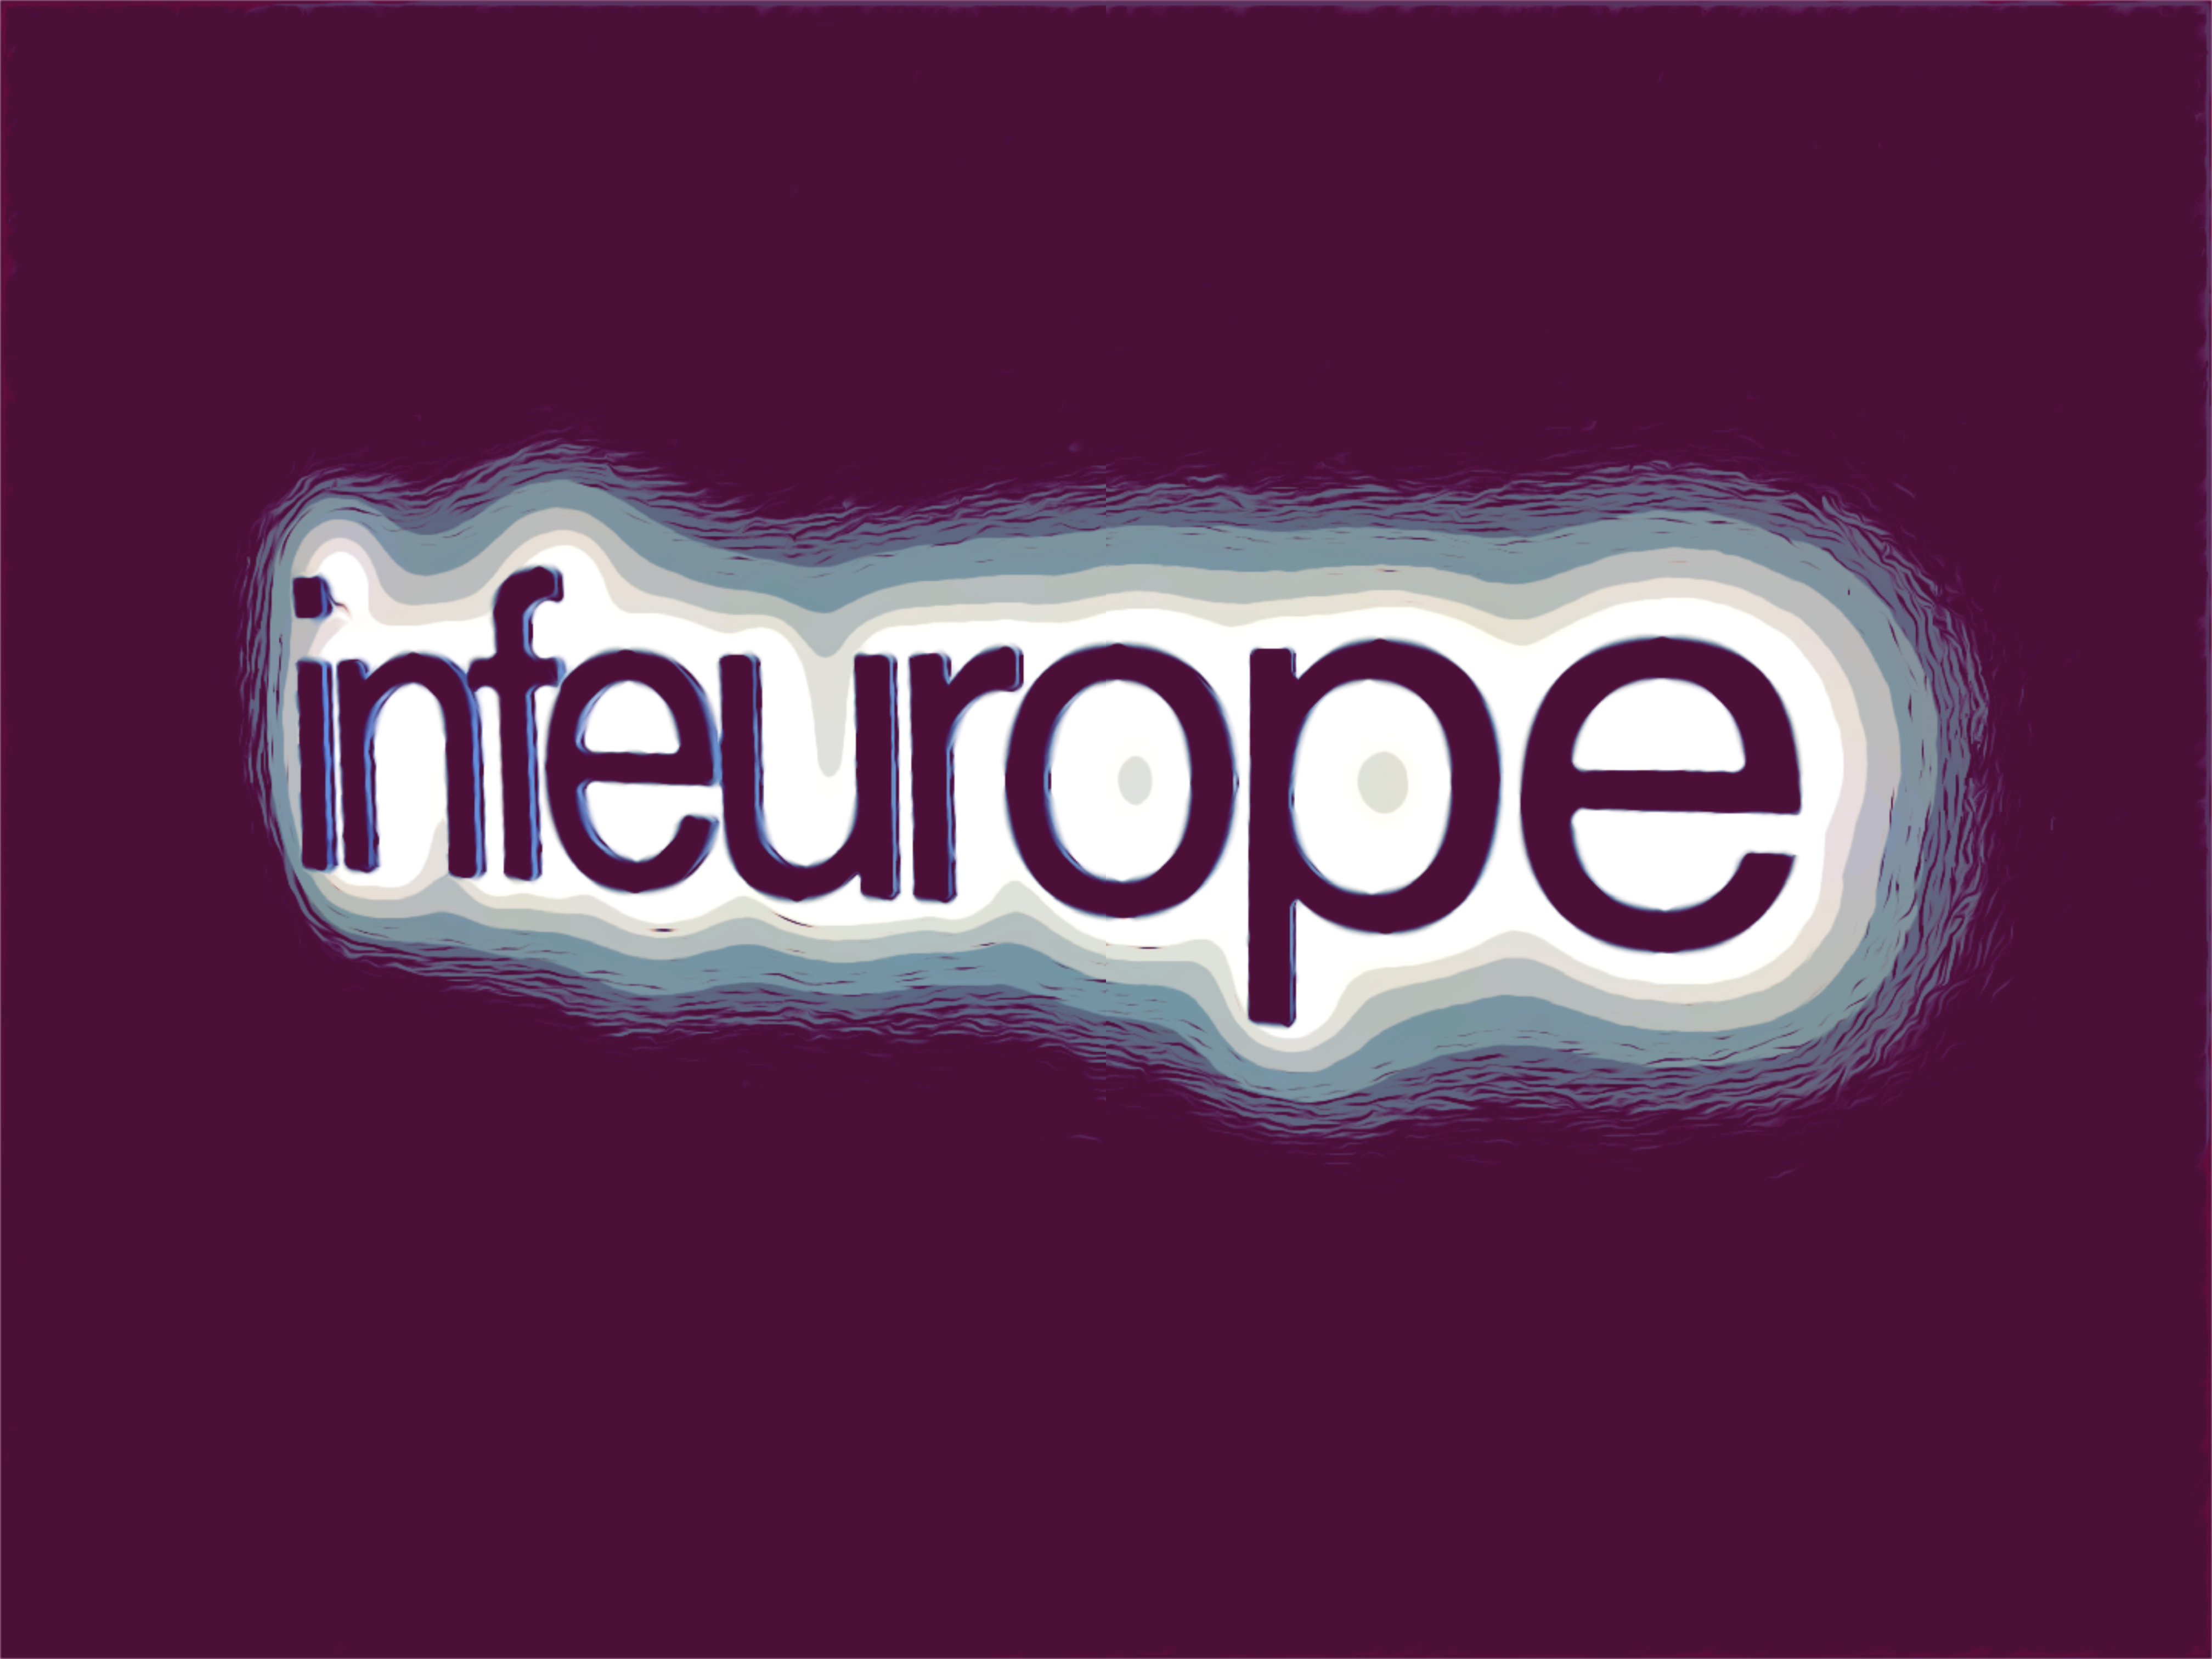 infeurope